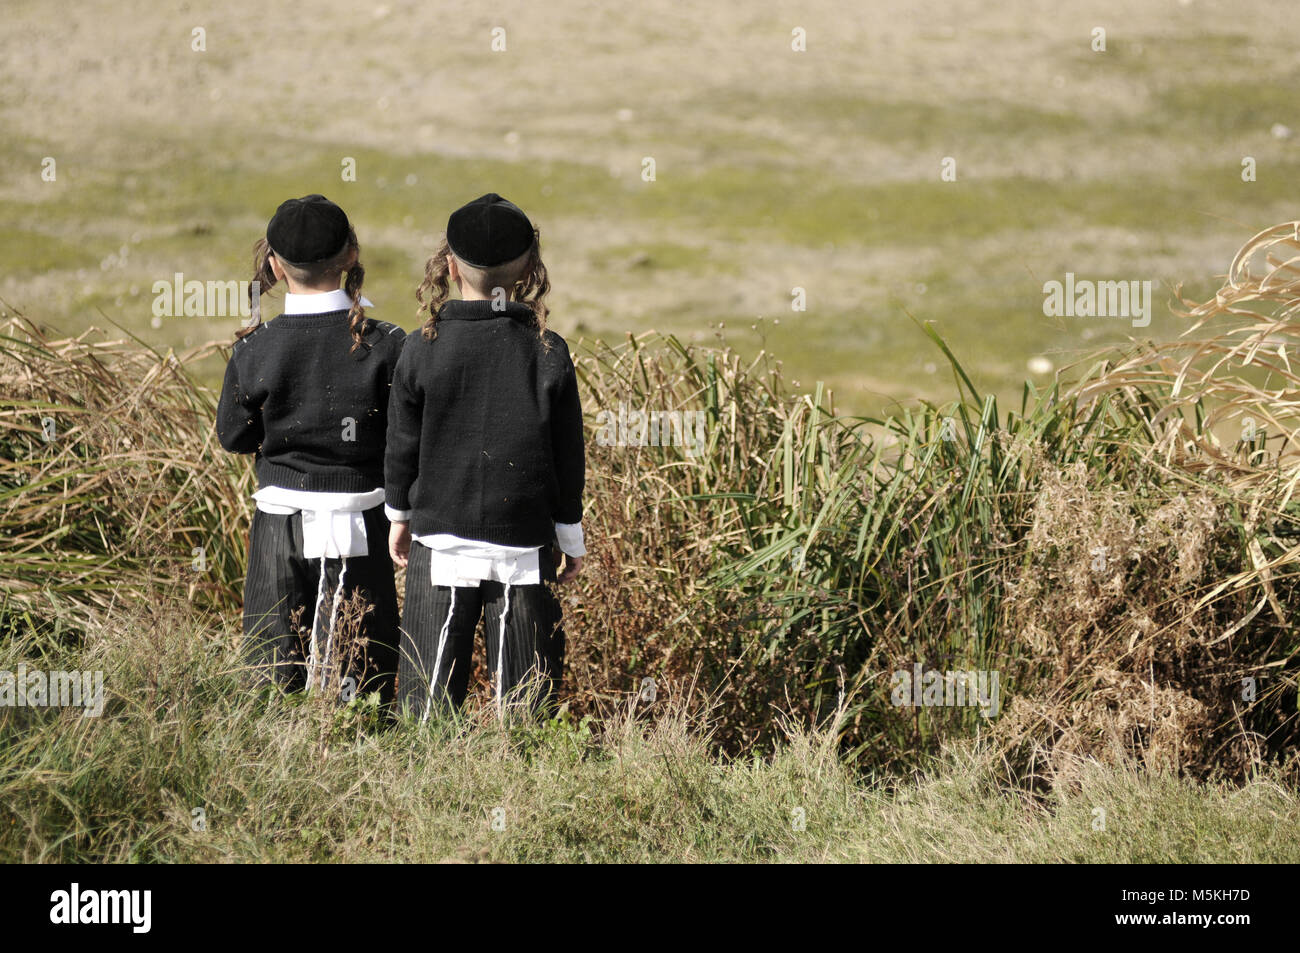 jews, jewish, judaism, hasidim, back, behind - Stock Image